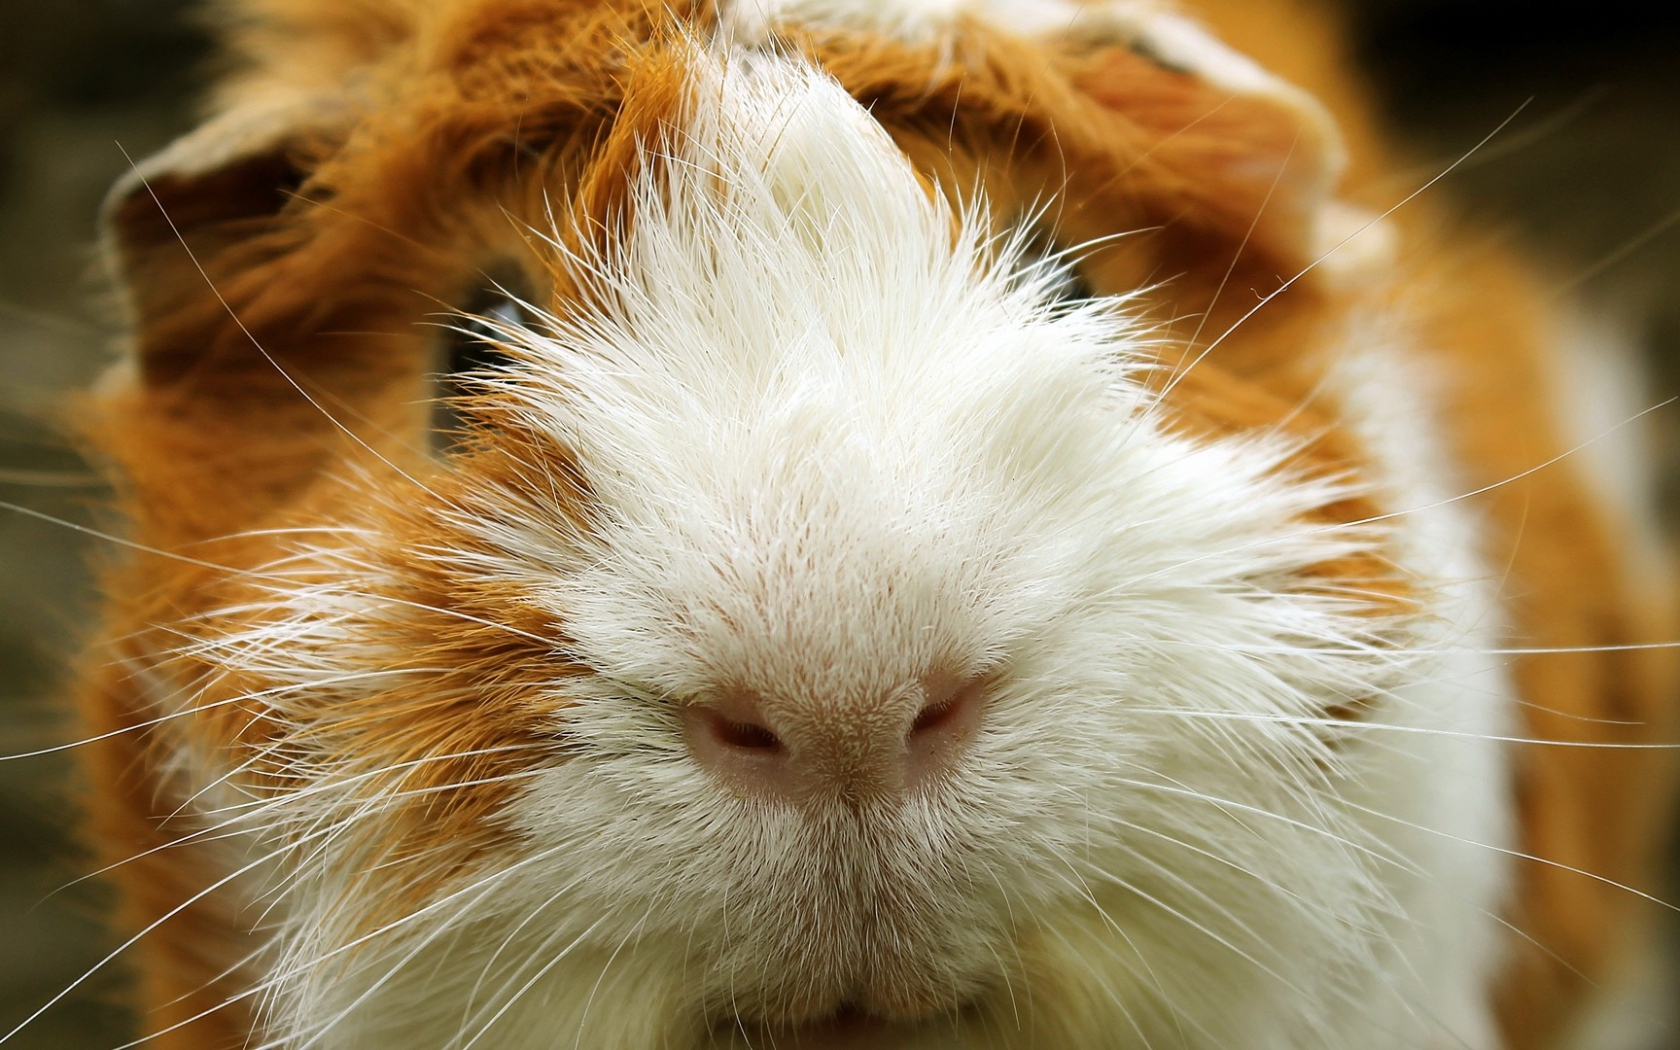 File Name 825044 1680x1050 Guinea Pig Wallpapers 1680x1050